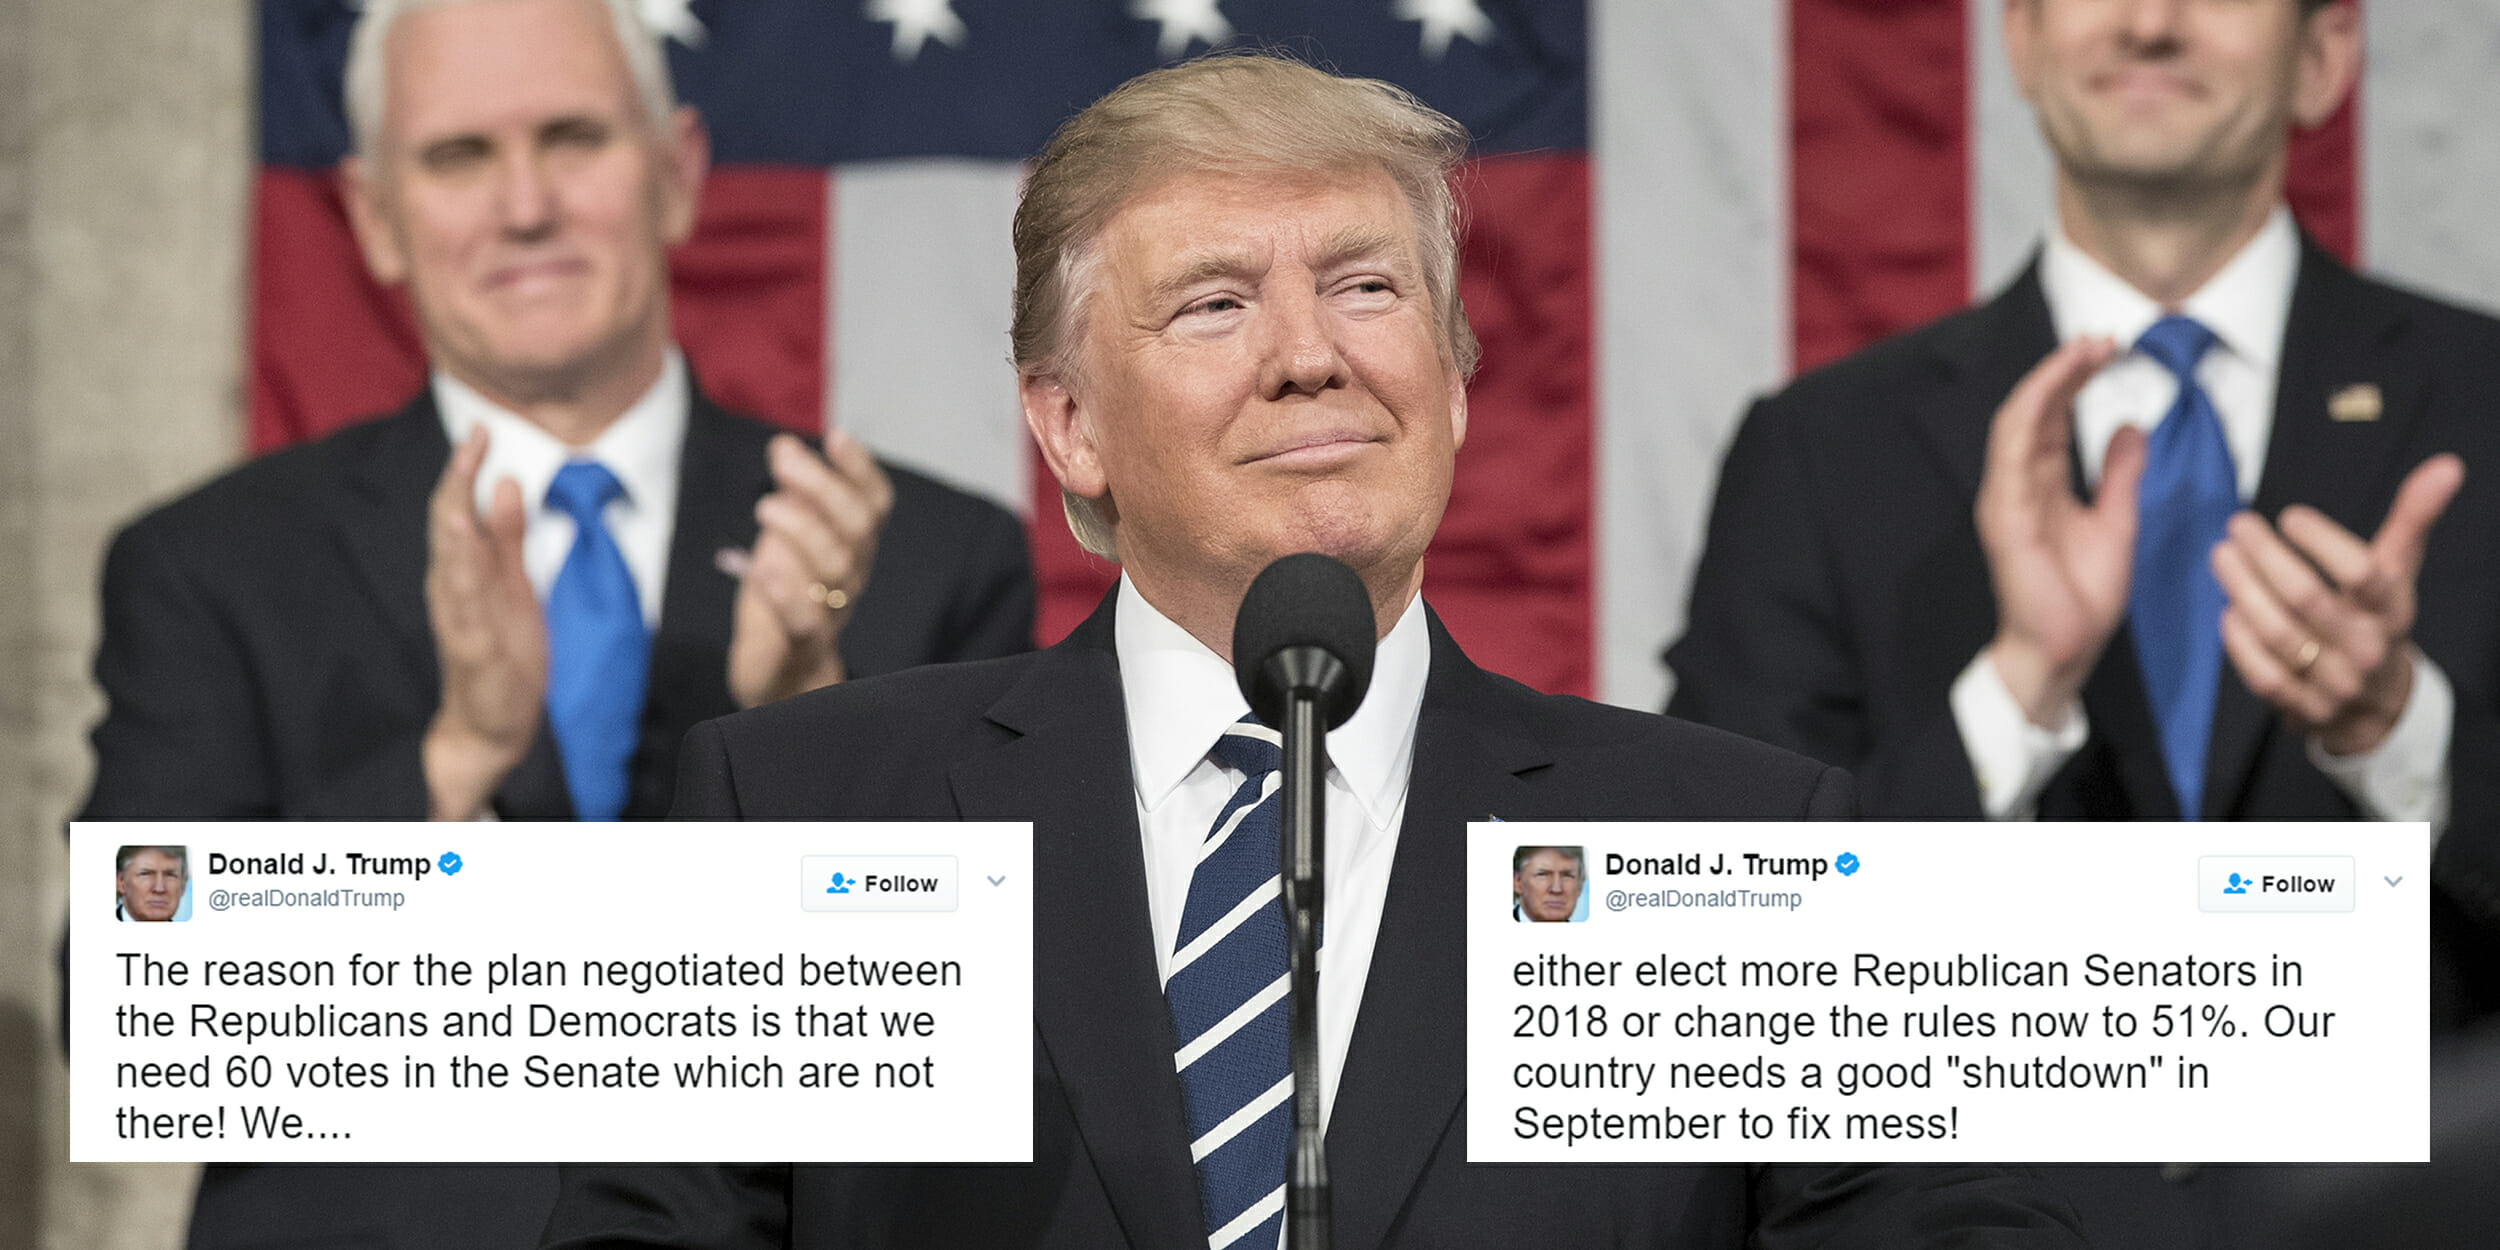 Donald Trump tweeting about filibuster rules